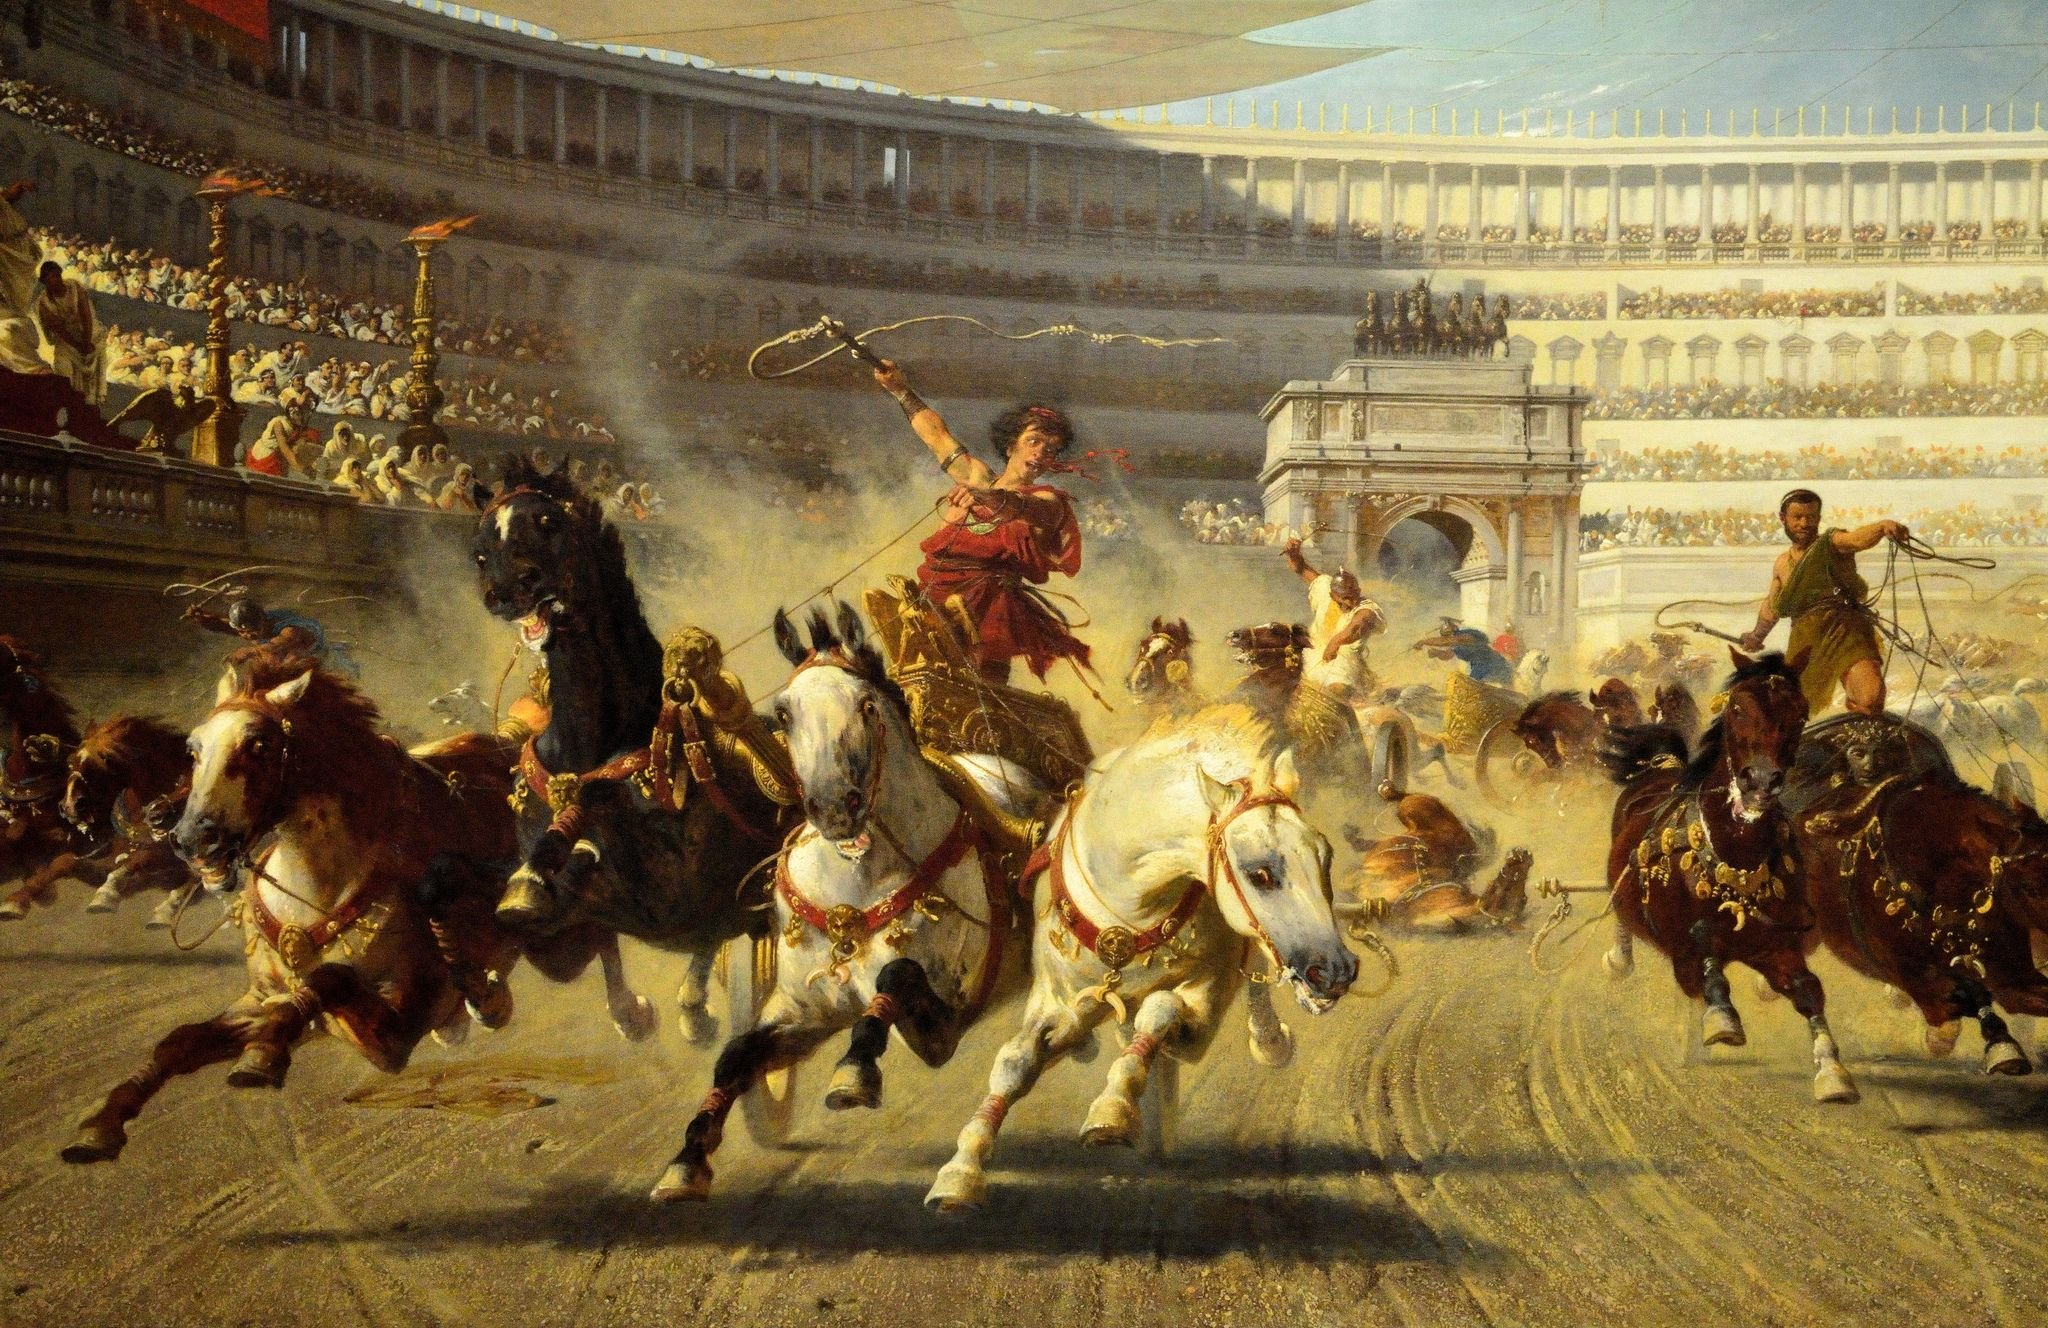 Chariot Racing In The Roman Empire: Speed, Fame, and Politics